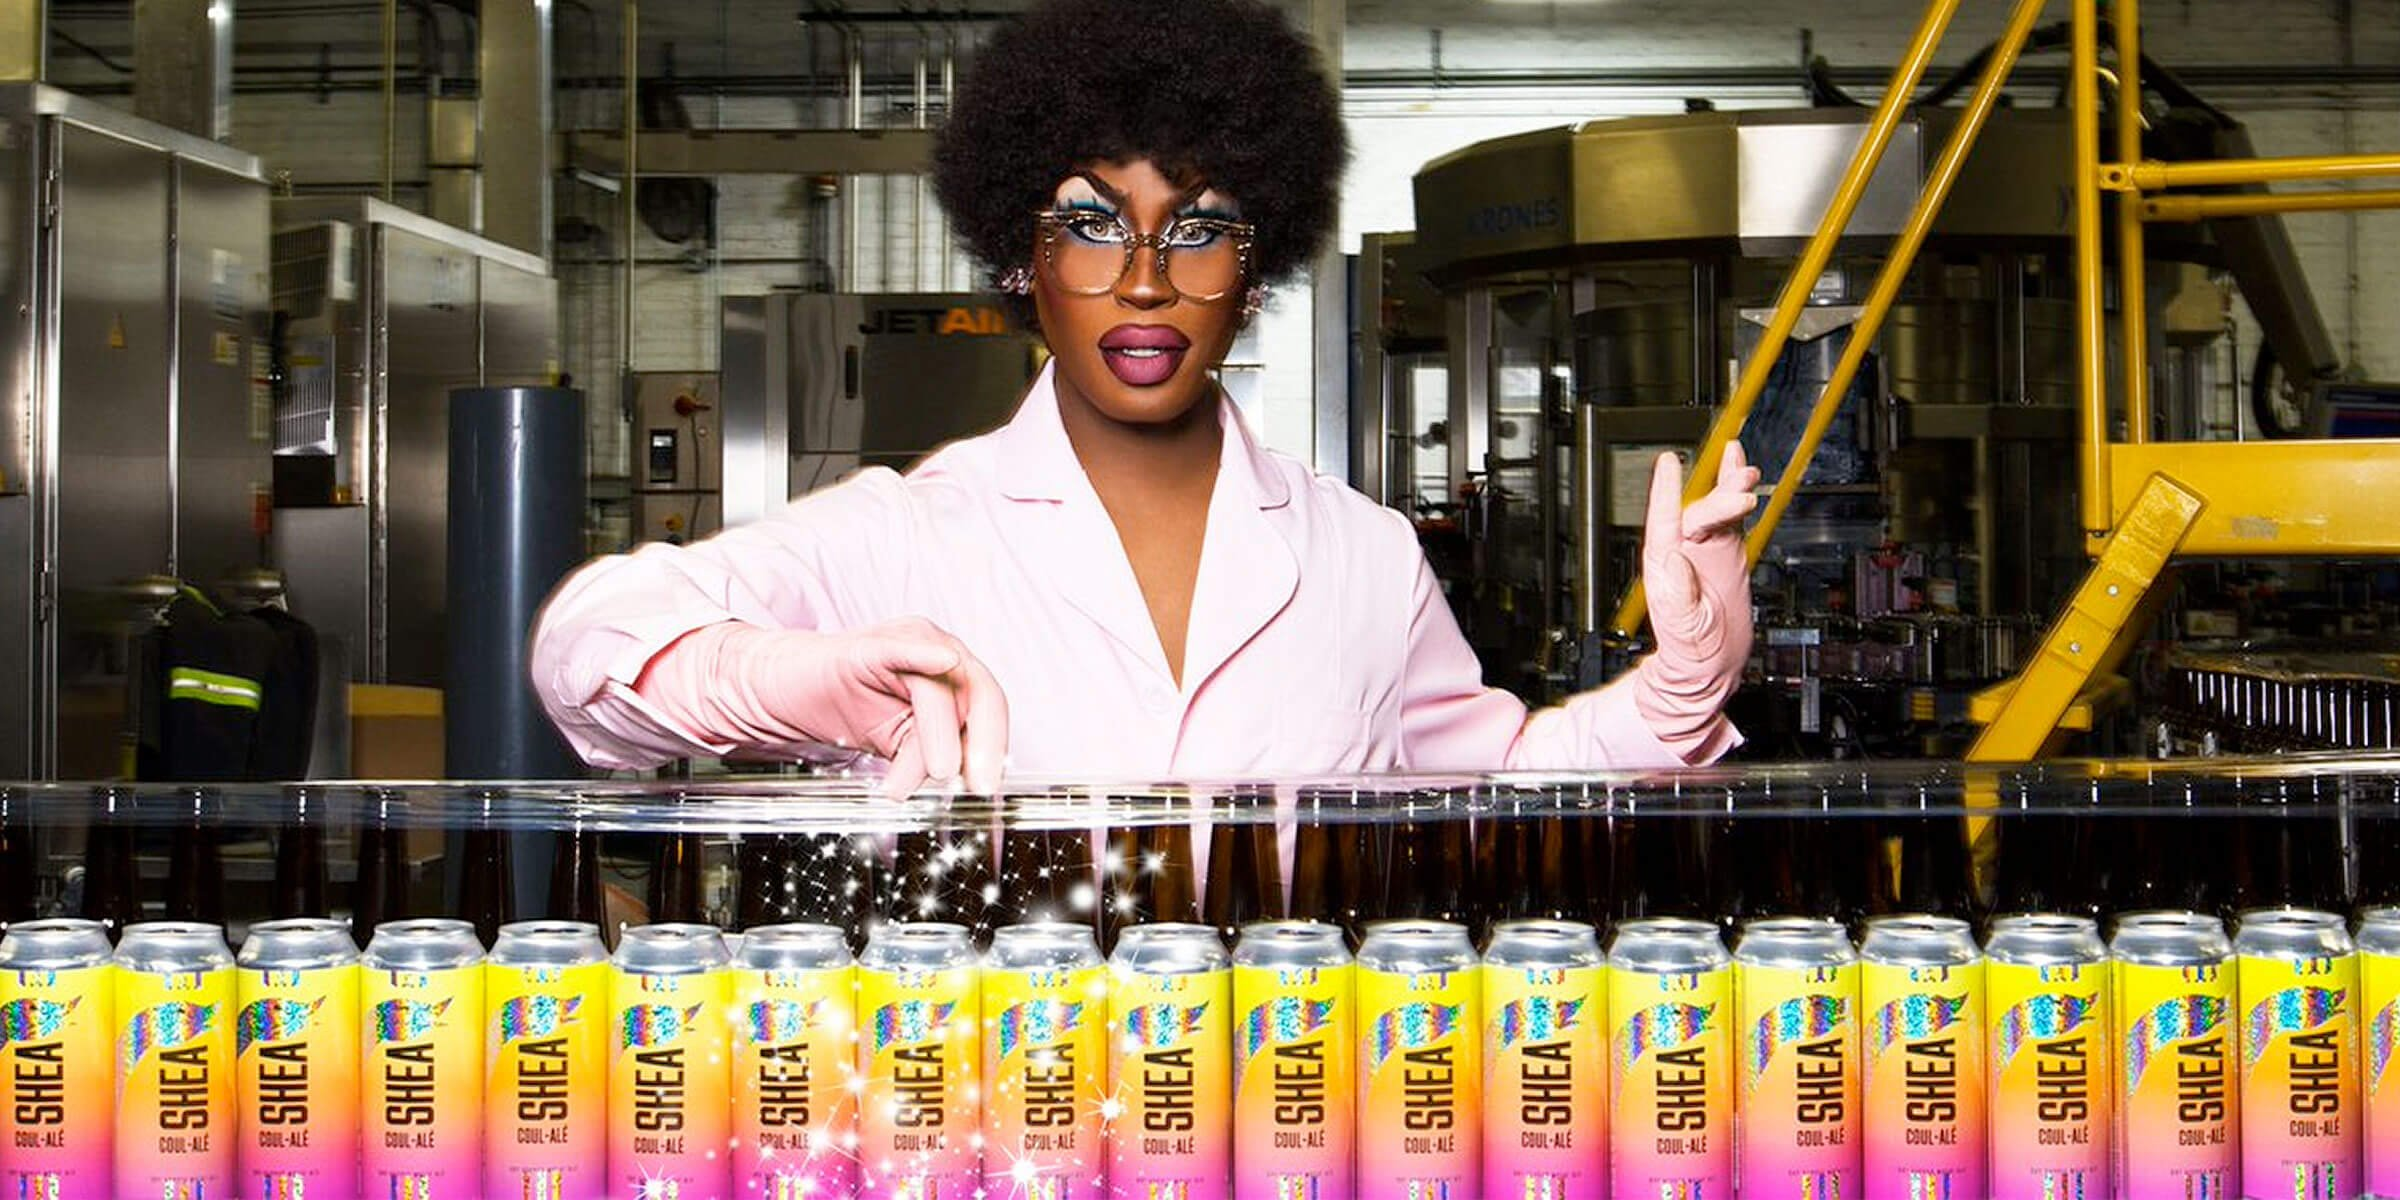 Goose Island Beer Co. releases a colorful beer for Pride Month in Shea Coul-Alé, a lemony wheat ale brewed in collaboration with drag queen Shea Couleé.